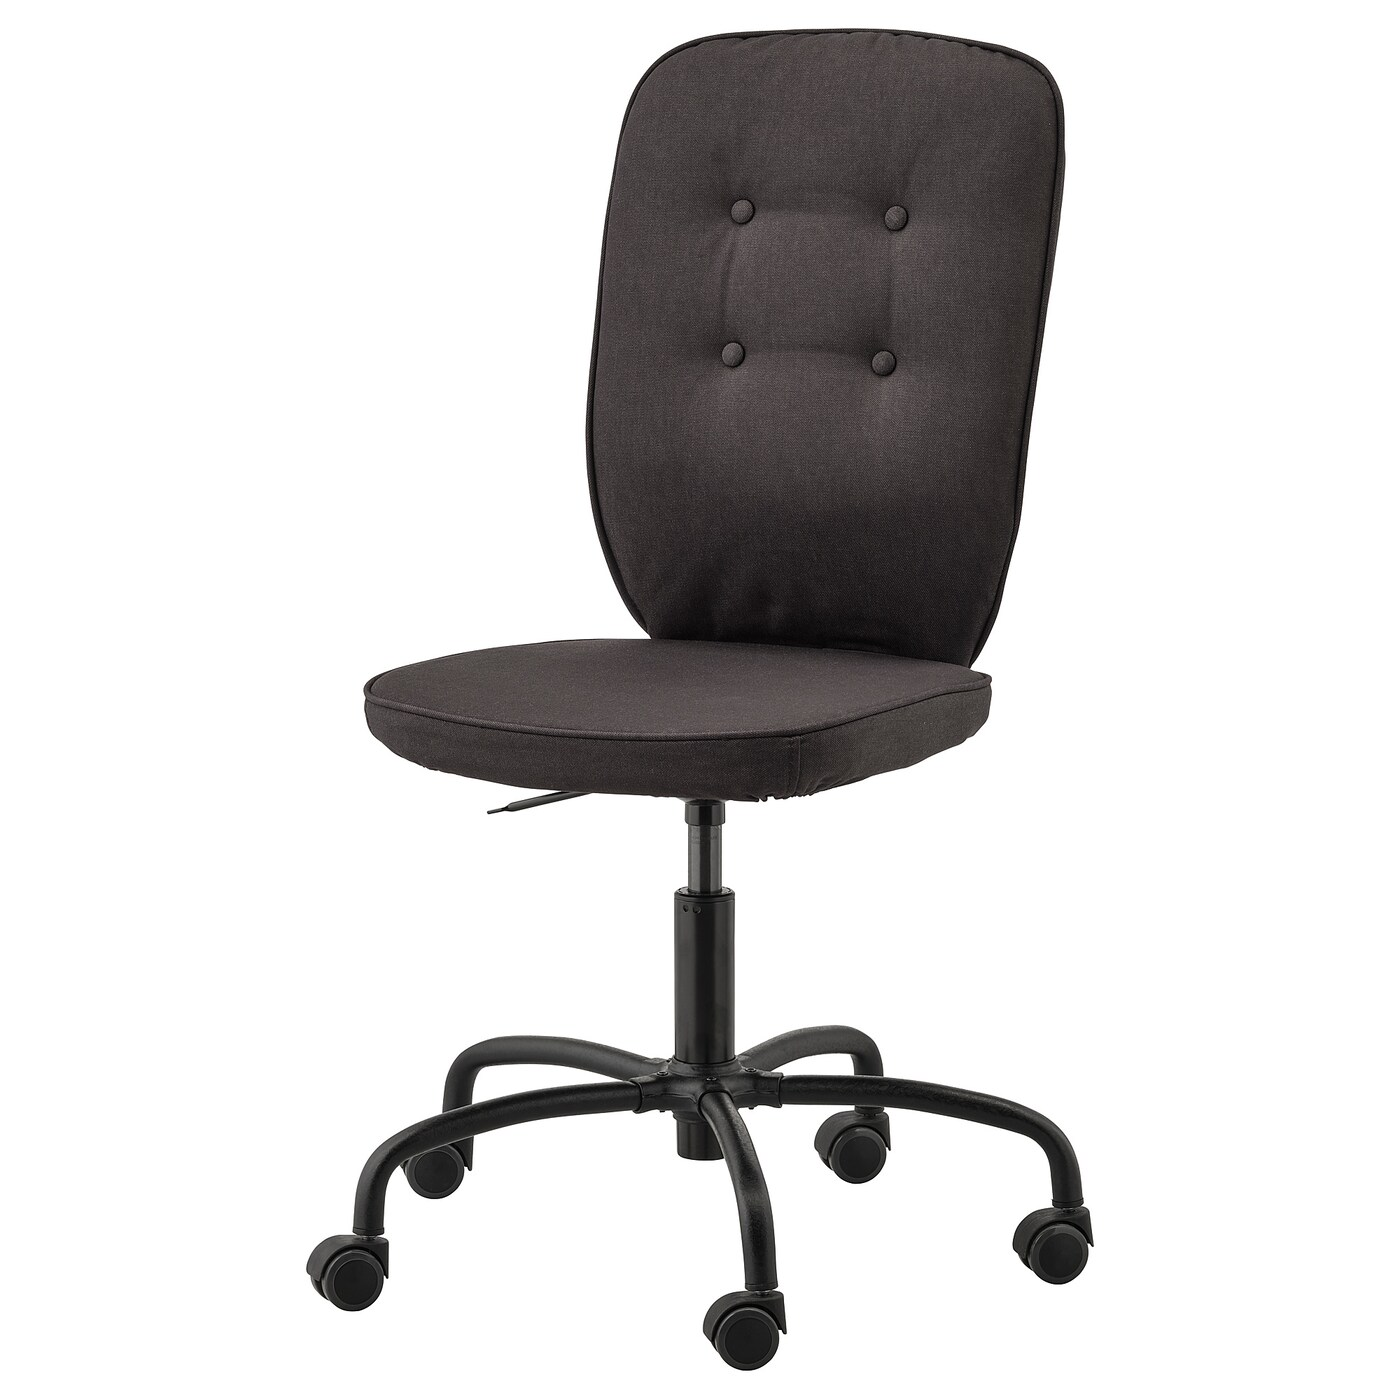 Foldable Office Chair Desk Chairs Office Seating Ikea